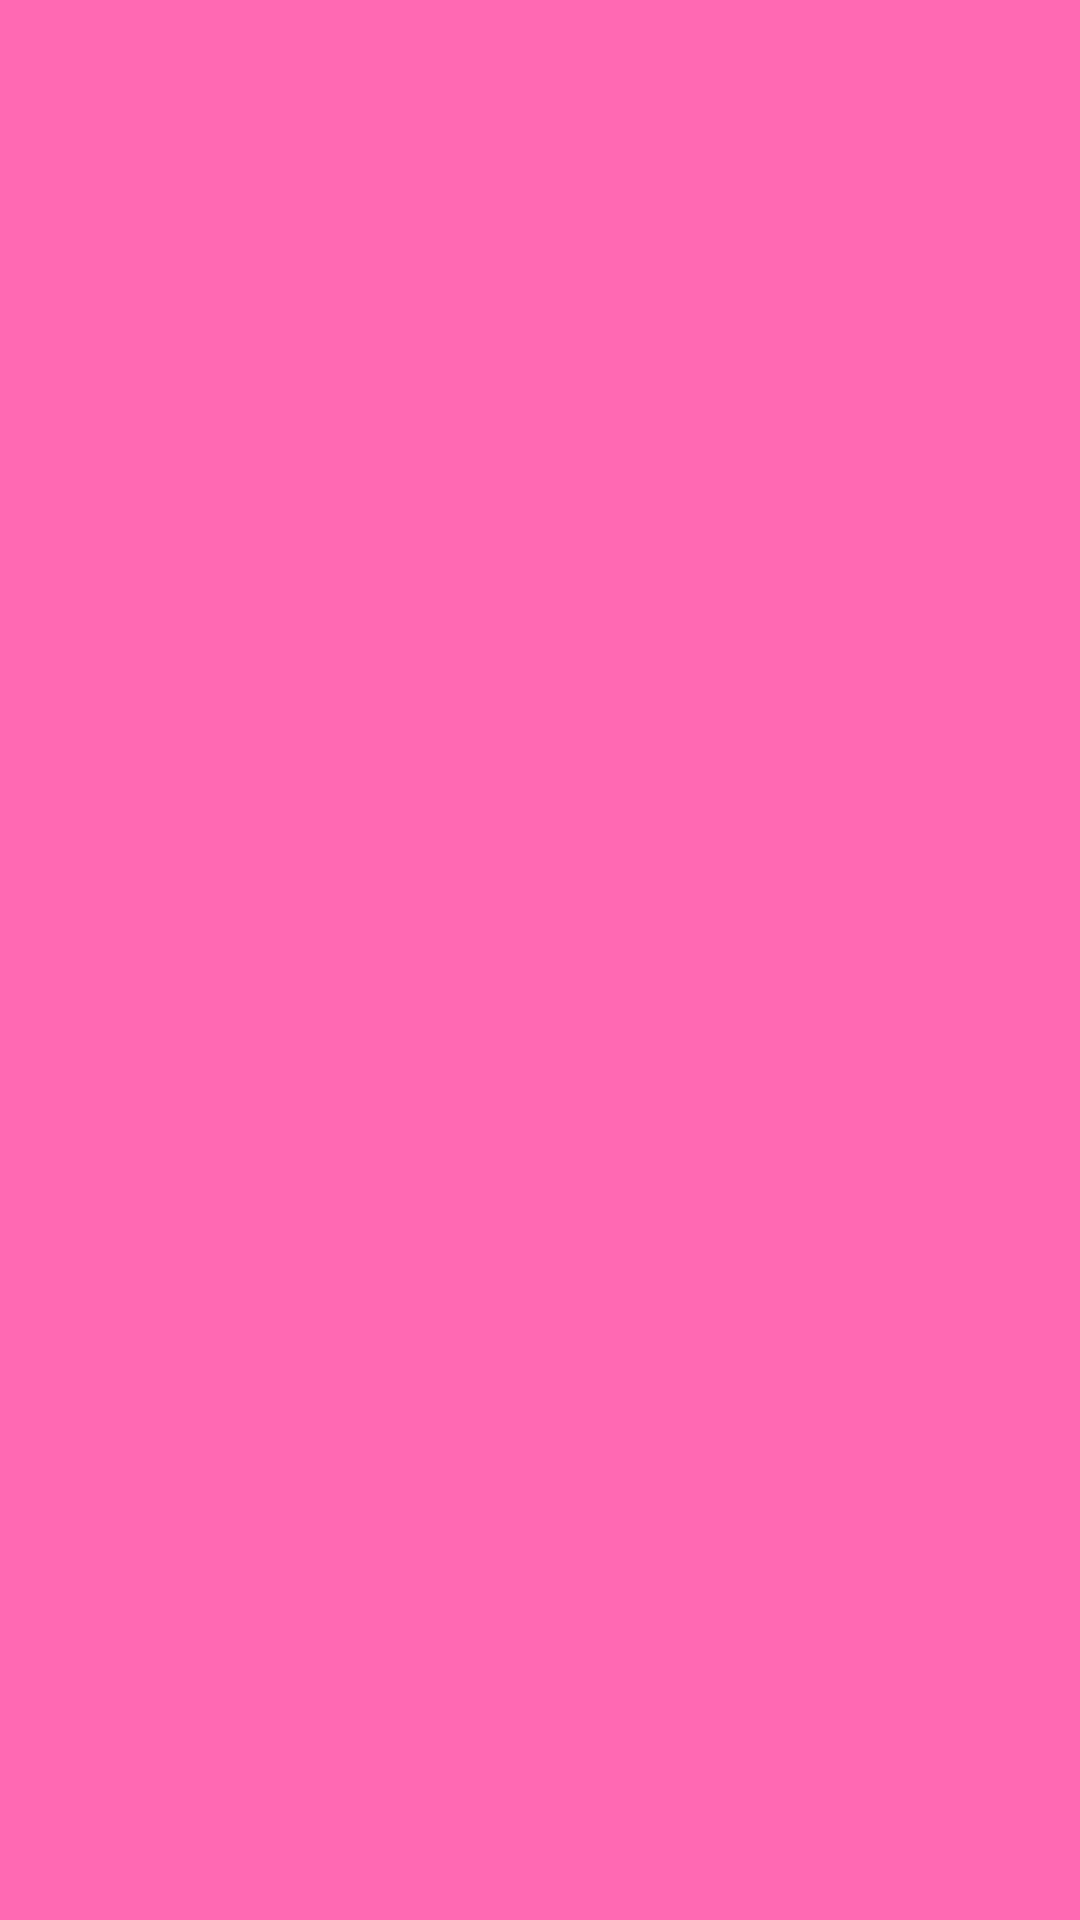 1080x1920 Solid Pink iPhone Wallpaper - Best iPhone Wallpaper | Solid color ...